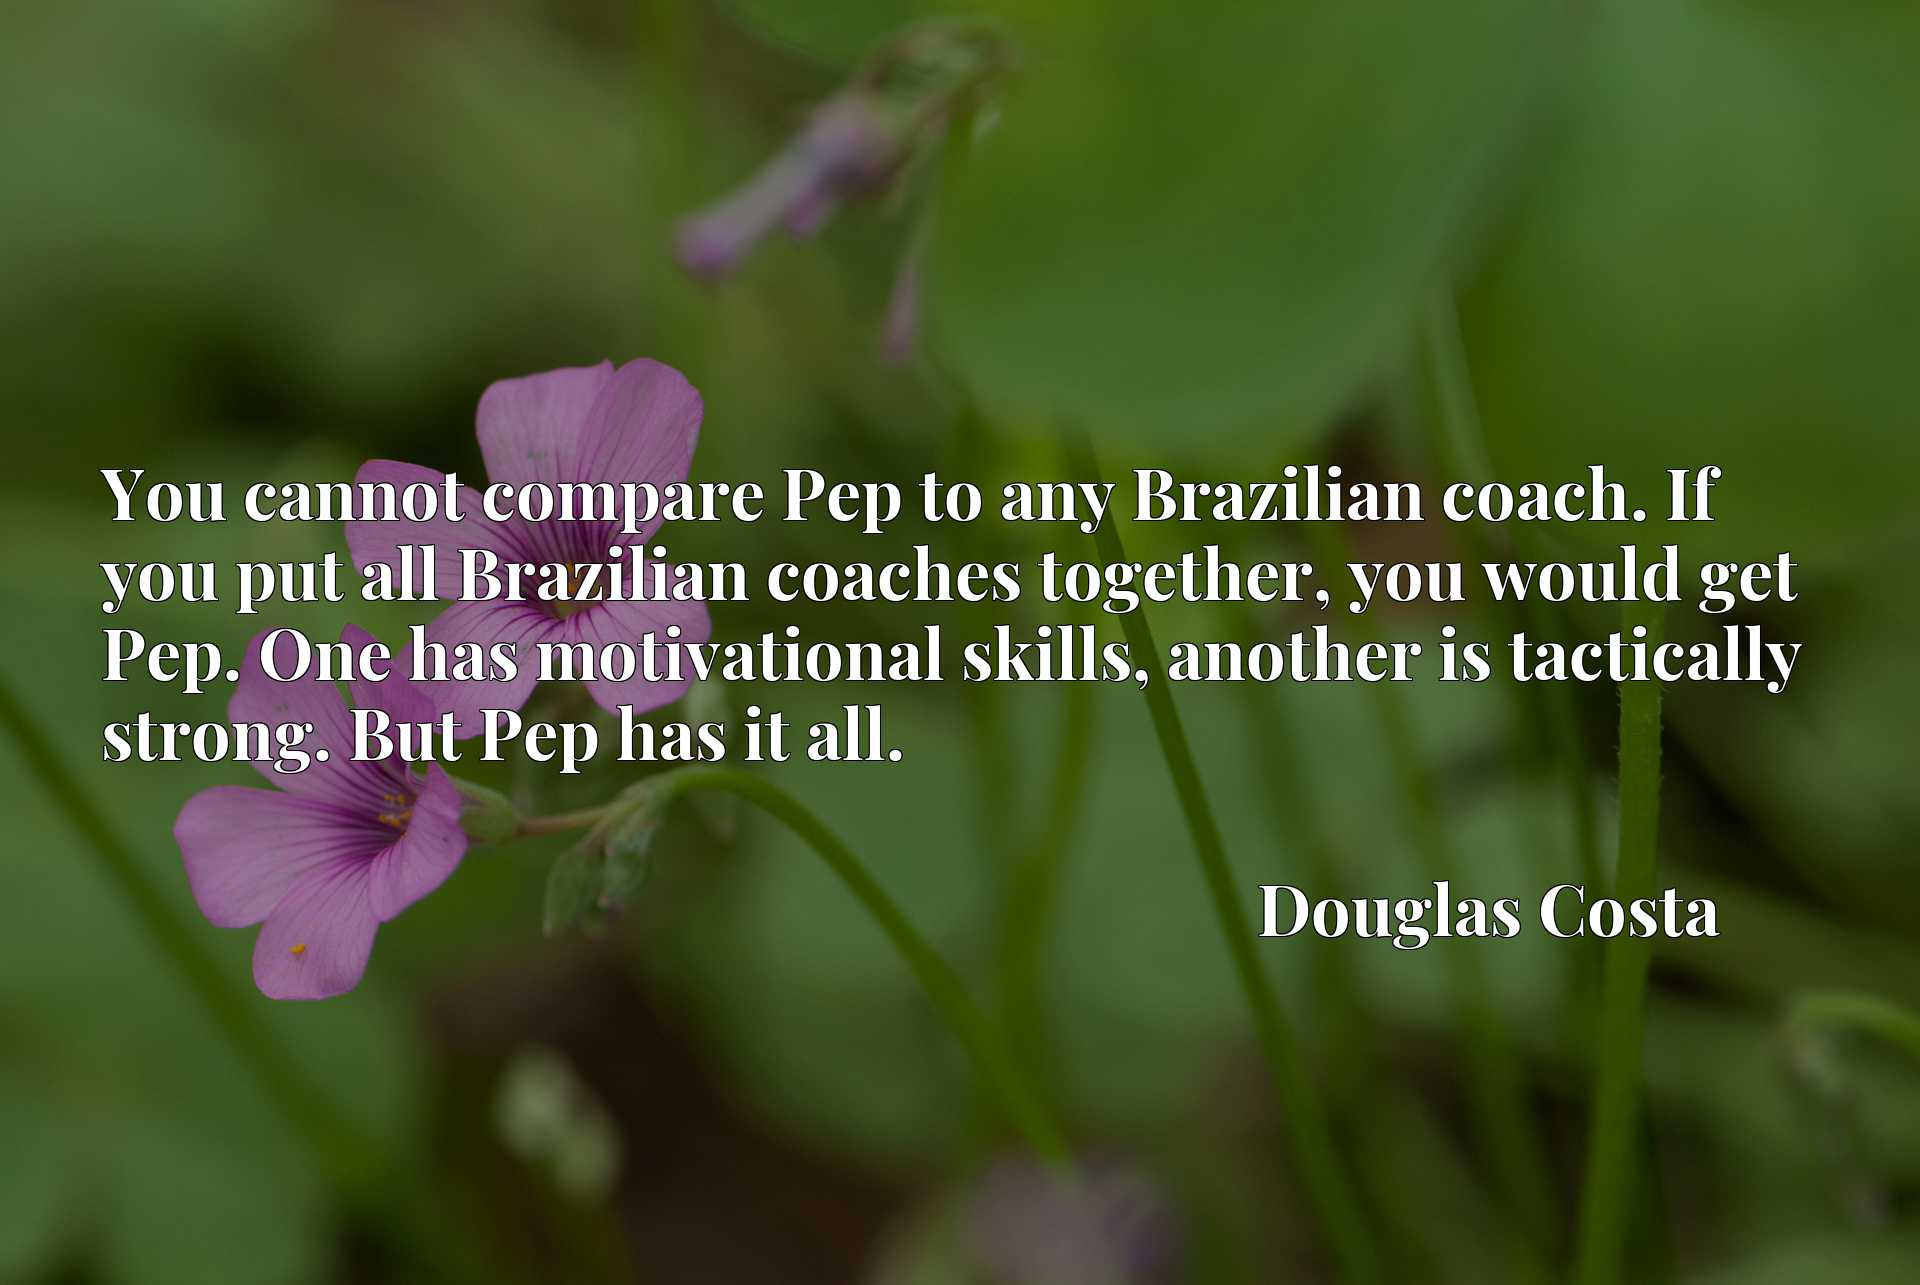 You cannot compare Pep to any Brazilian coach. If you put all Brazilian coaches together, you would get Pep. One has motivational skills, another is tactically strong. But Pep has it all.